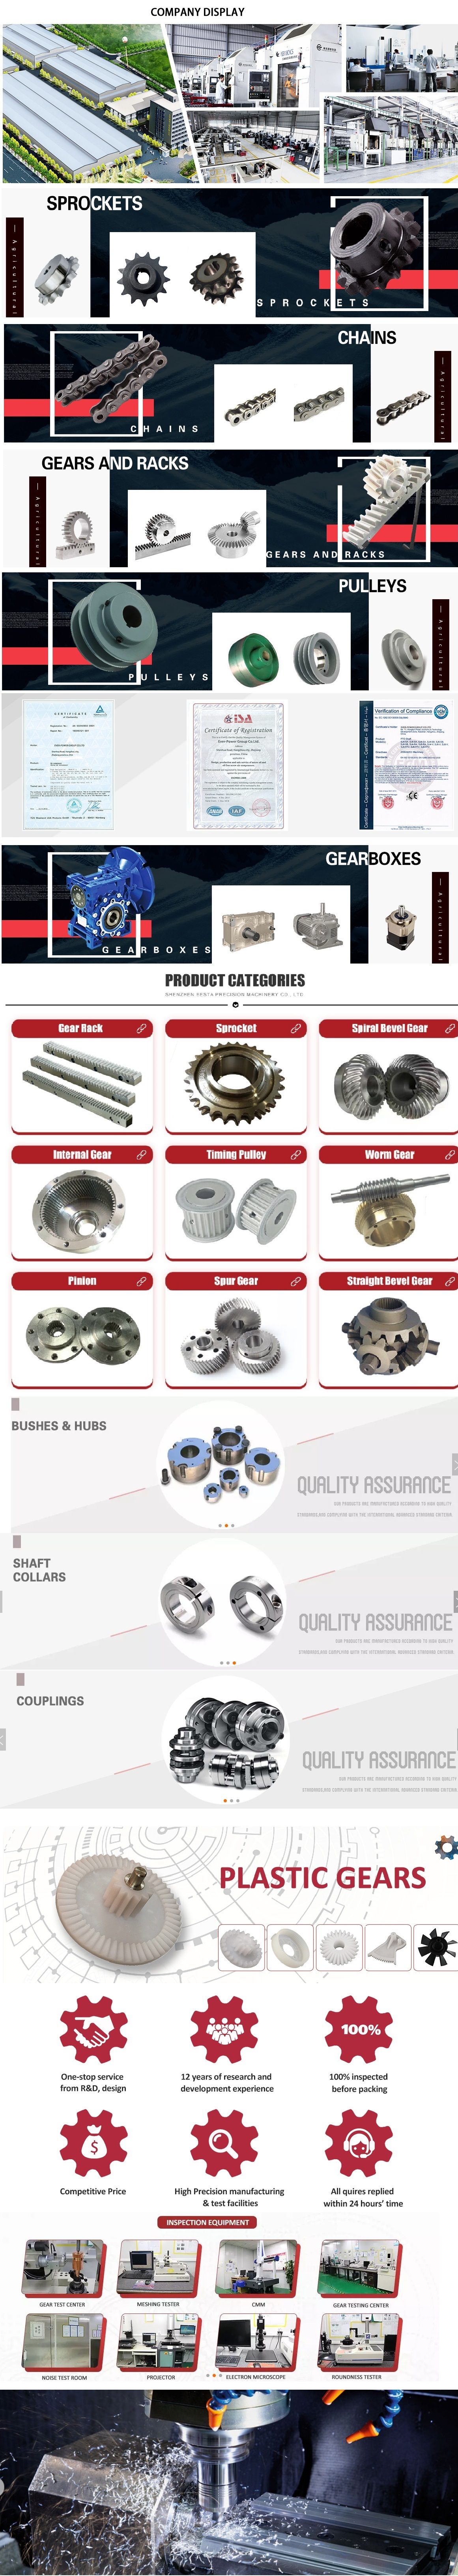 in Sanliurfa Turkey  sales   price   shop   near me   near me shop   factory   supplier NEMA 17 Worm Gear Drive Wheel Set Pinion Duplex Ground Plastic Good Price Ground Shaft Helical Micro Best Manufacturers Brass Stainless Steel NEMA 17 Worm Gear manufacturer   best   Cost   Custom   Cheap   wholesaler